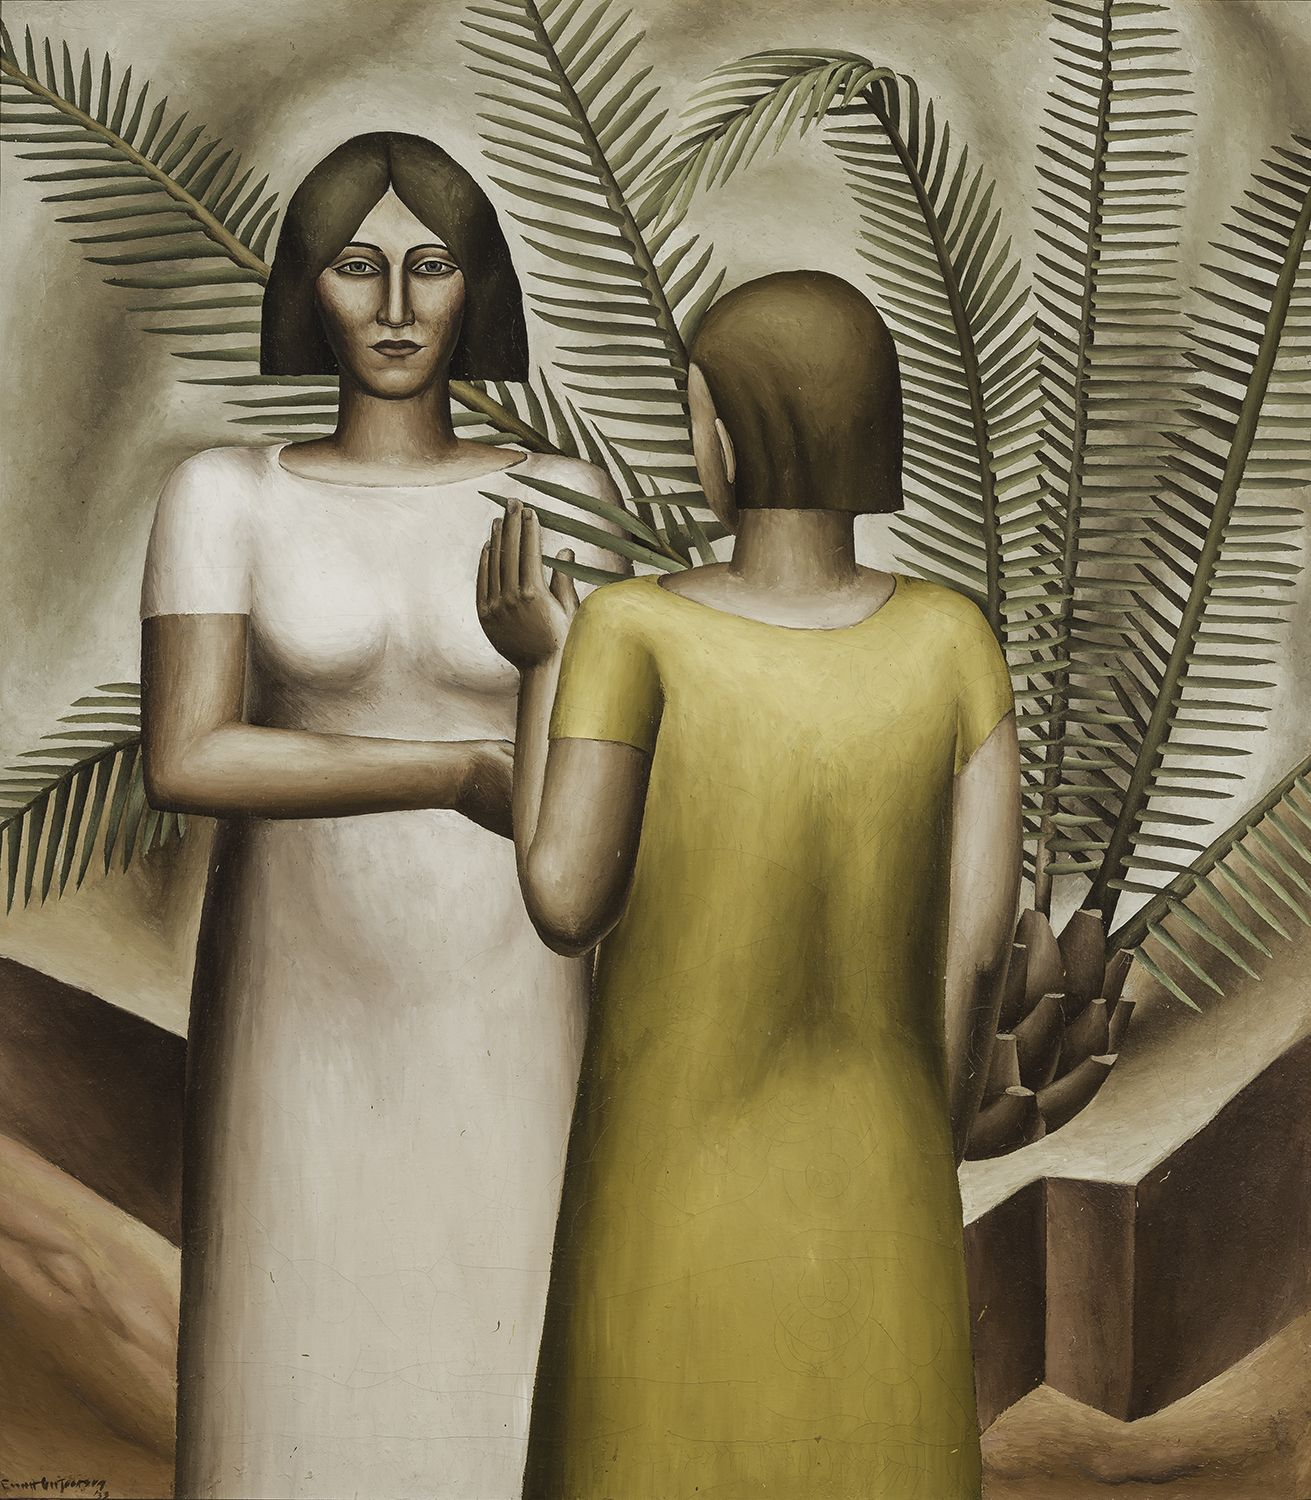 Two Girls and Palm, 1933, Oil on canvas, 36 1/2 x 32 in.